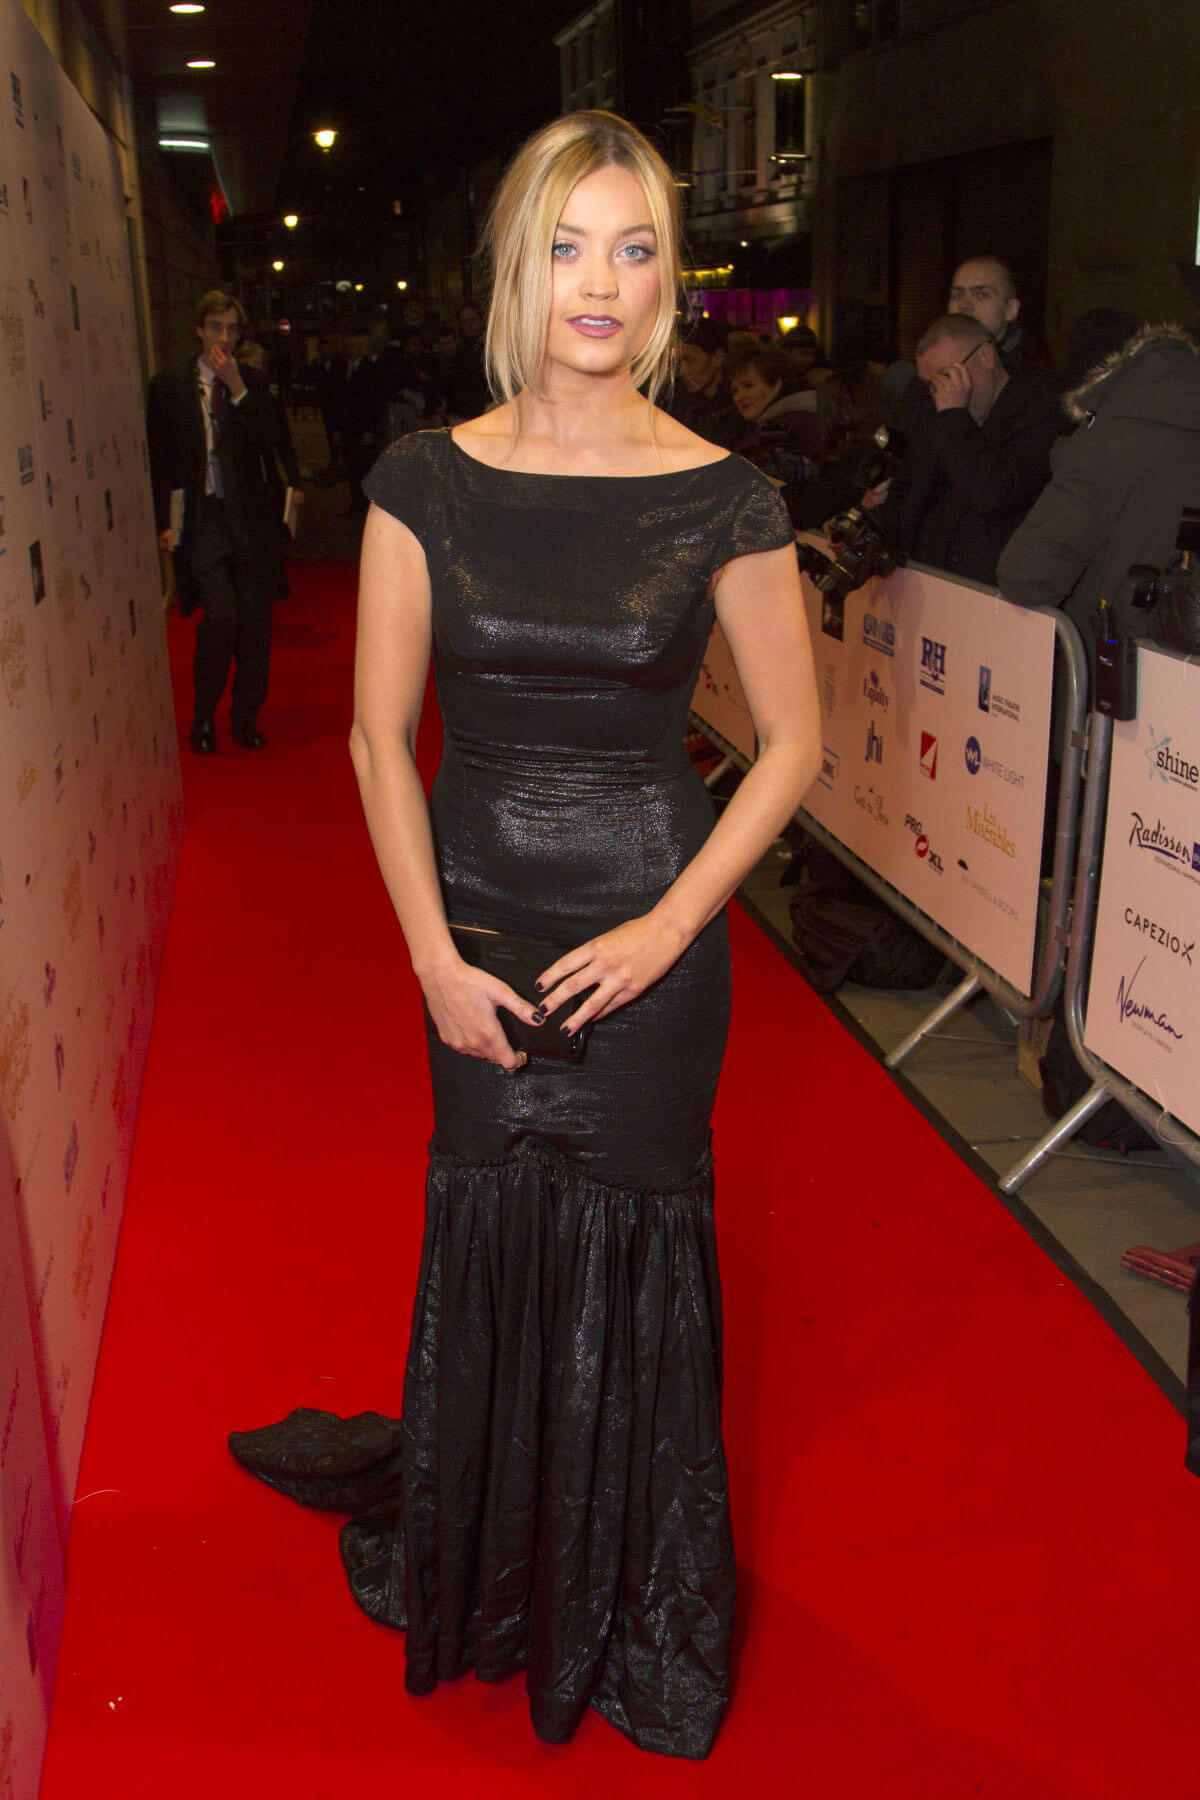 Laura Whitmore Stills at 2017 WhatsOnStage Awards Concert in London